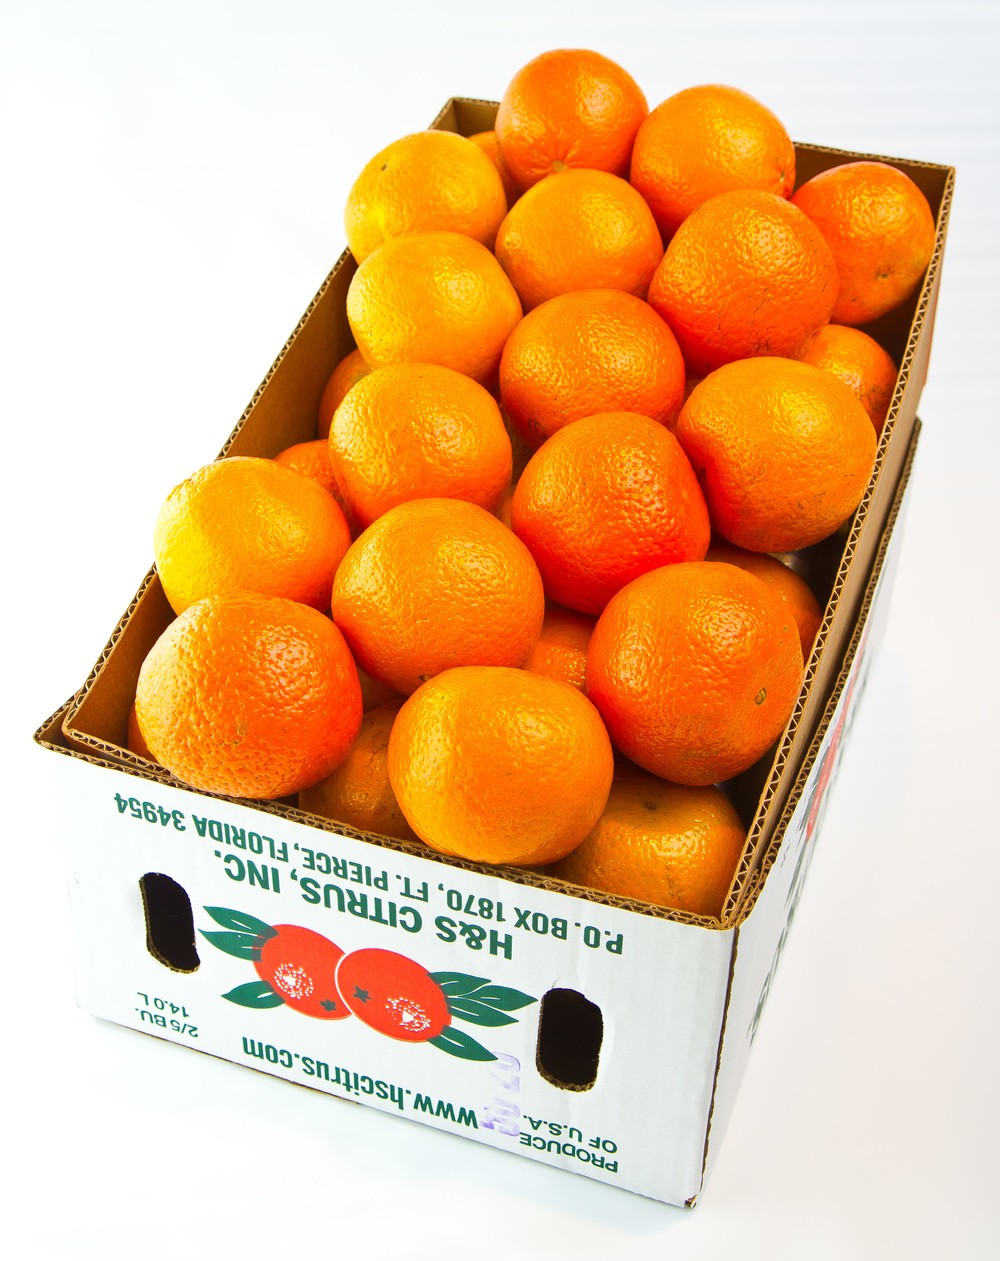 Temple oranges, H & S Citrus